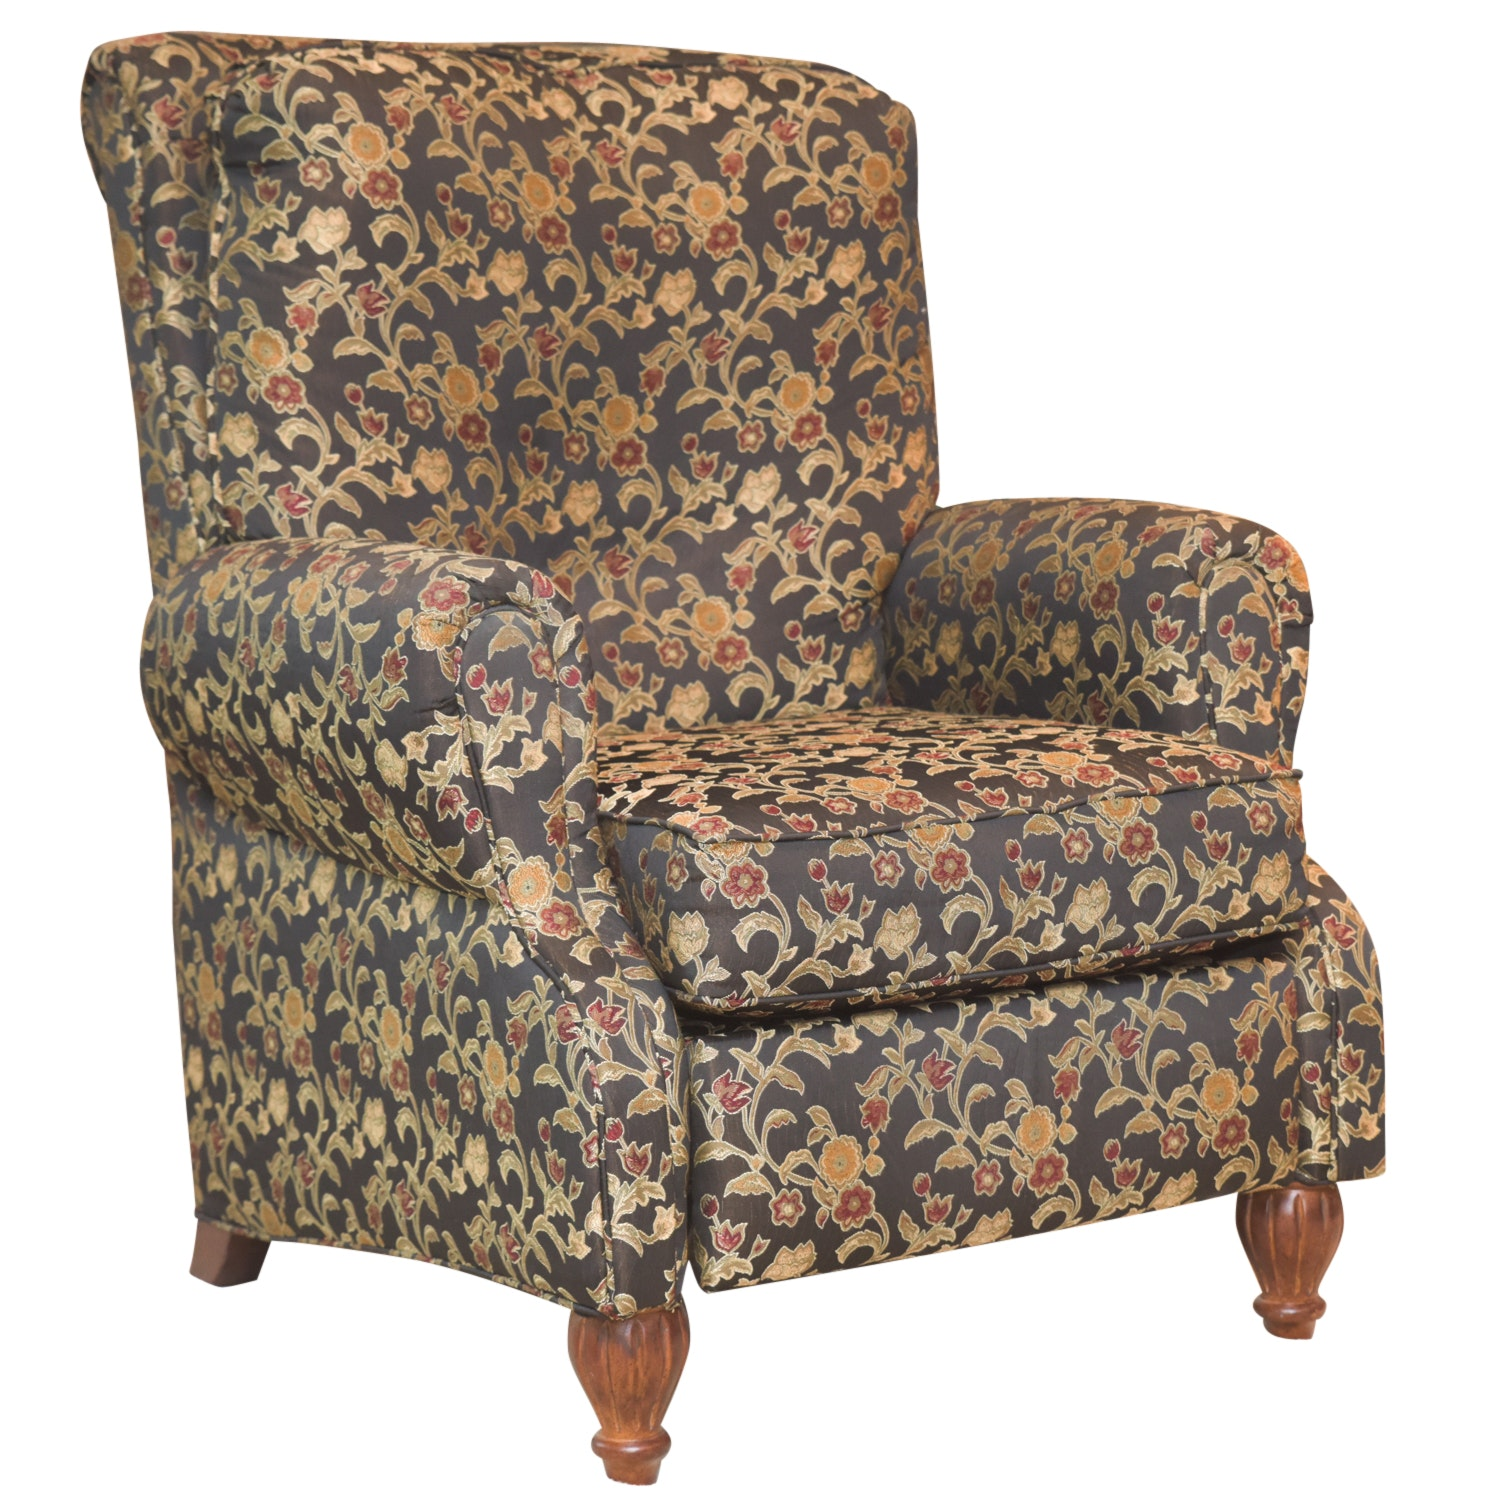 Fairfield Floral Patterned Recliner